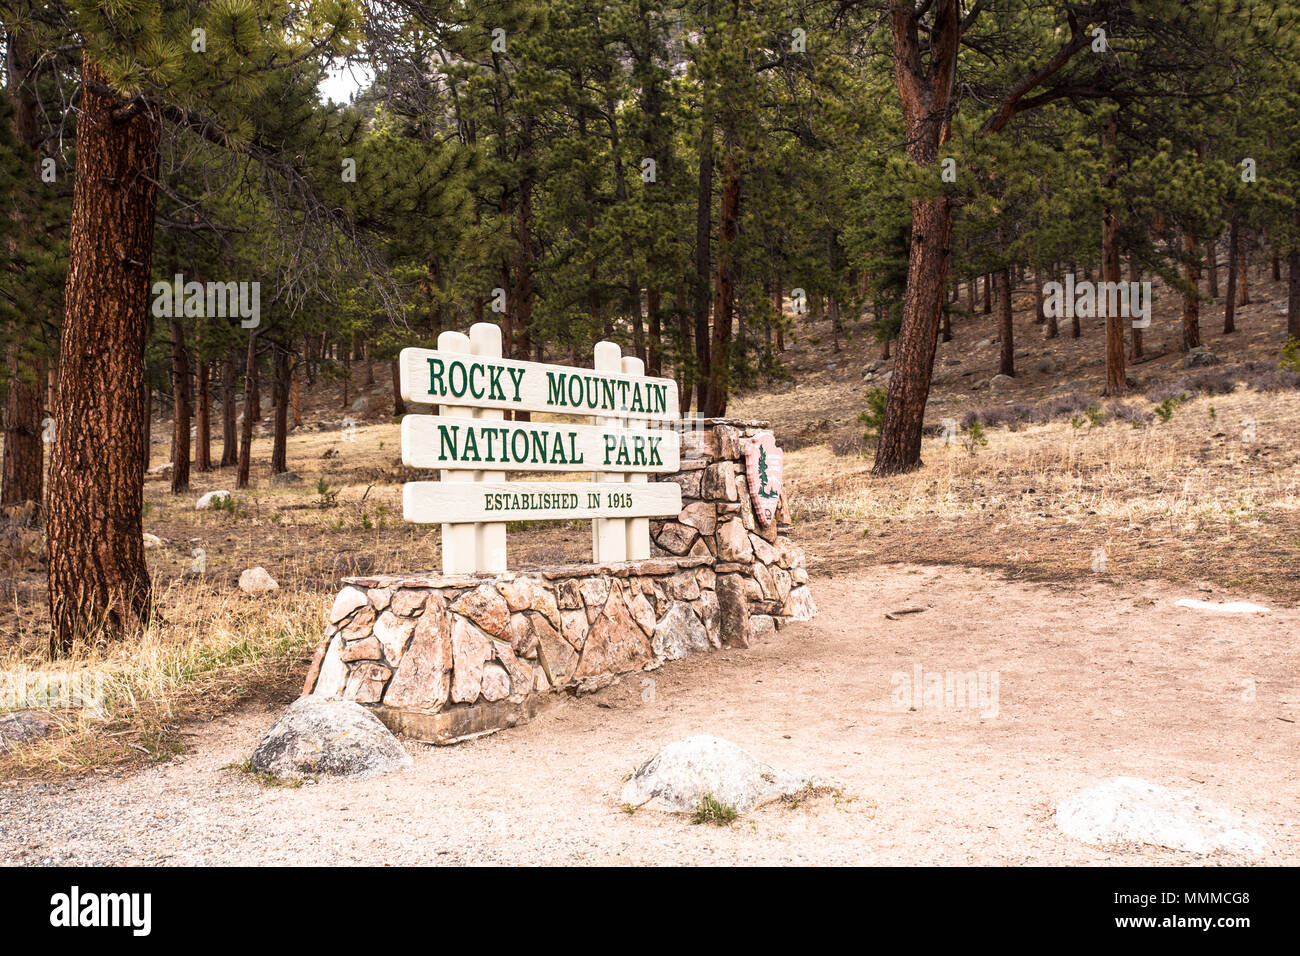 View from Rocky Mountain National Park in Colorado with sign indicating entrance from Estes Park gate - Stock Image